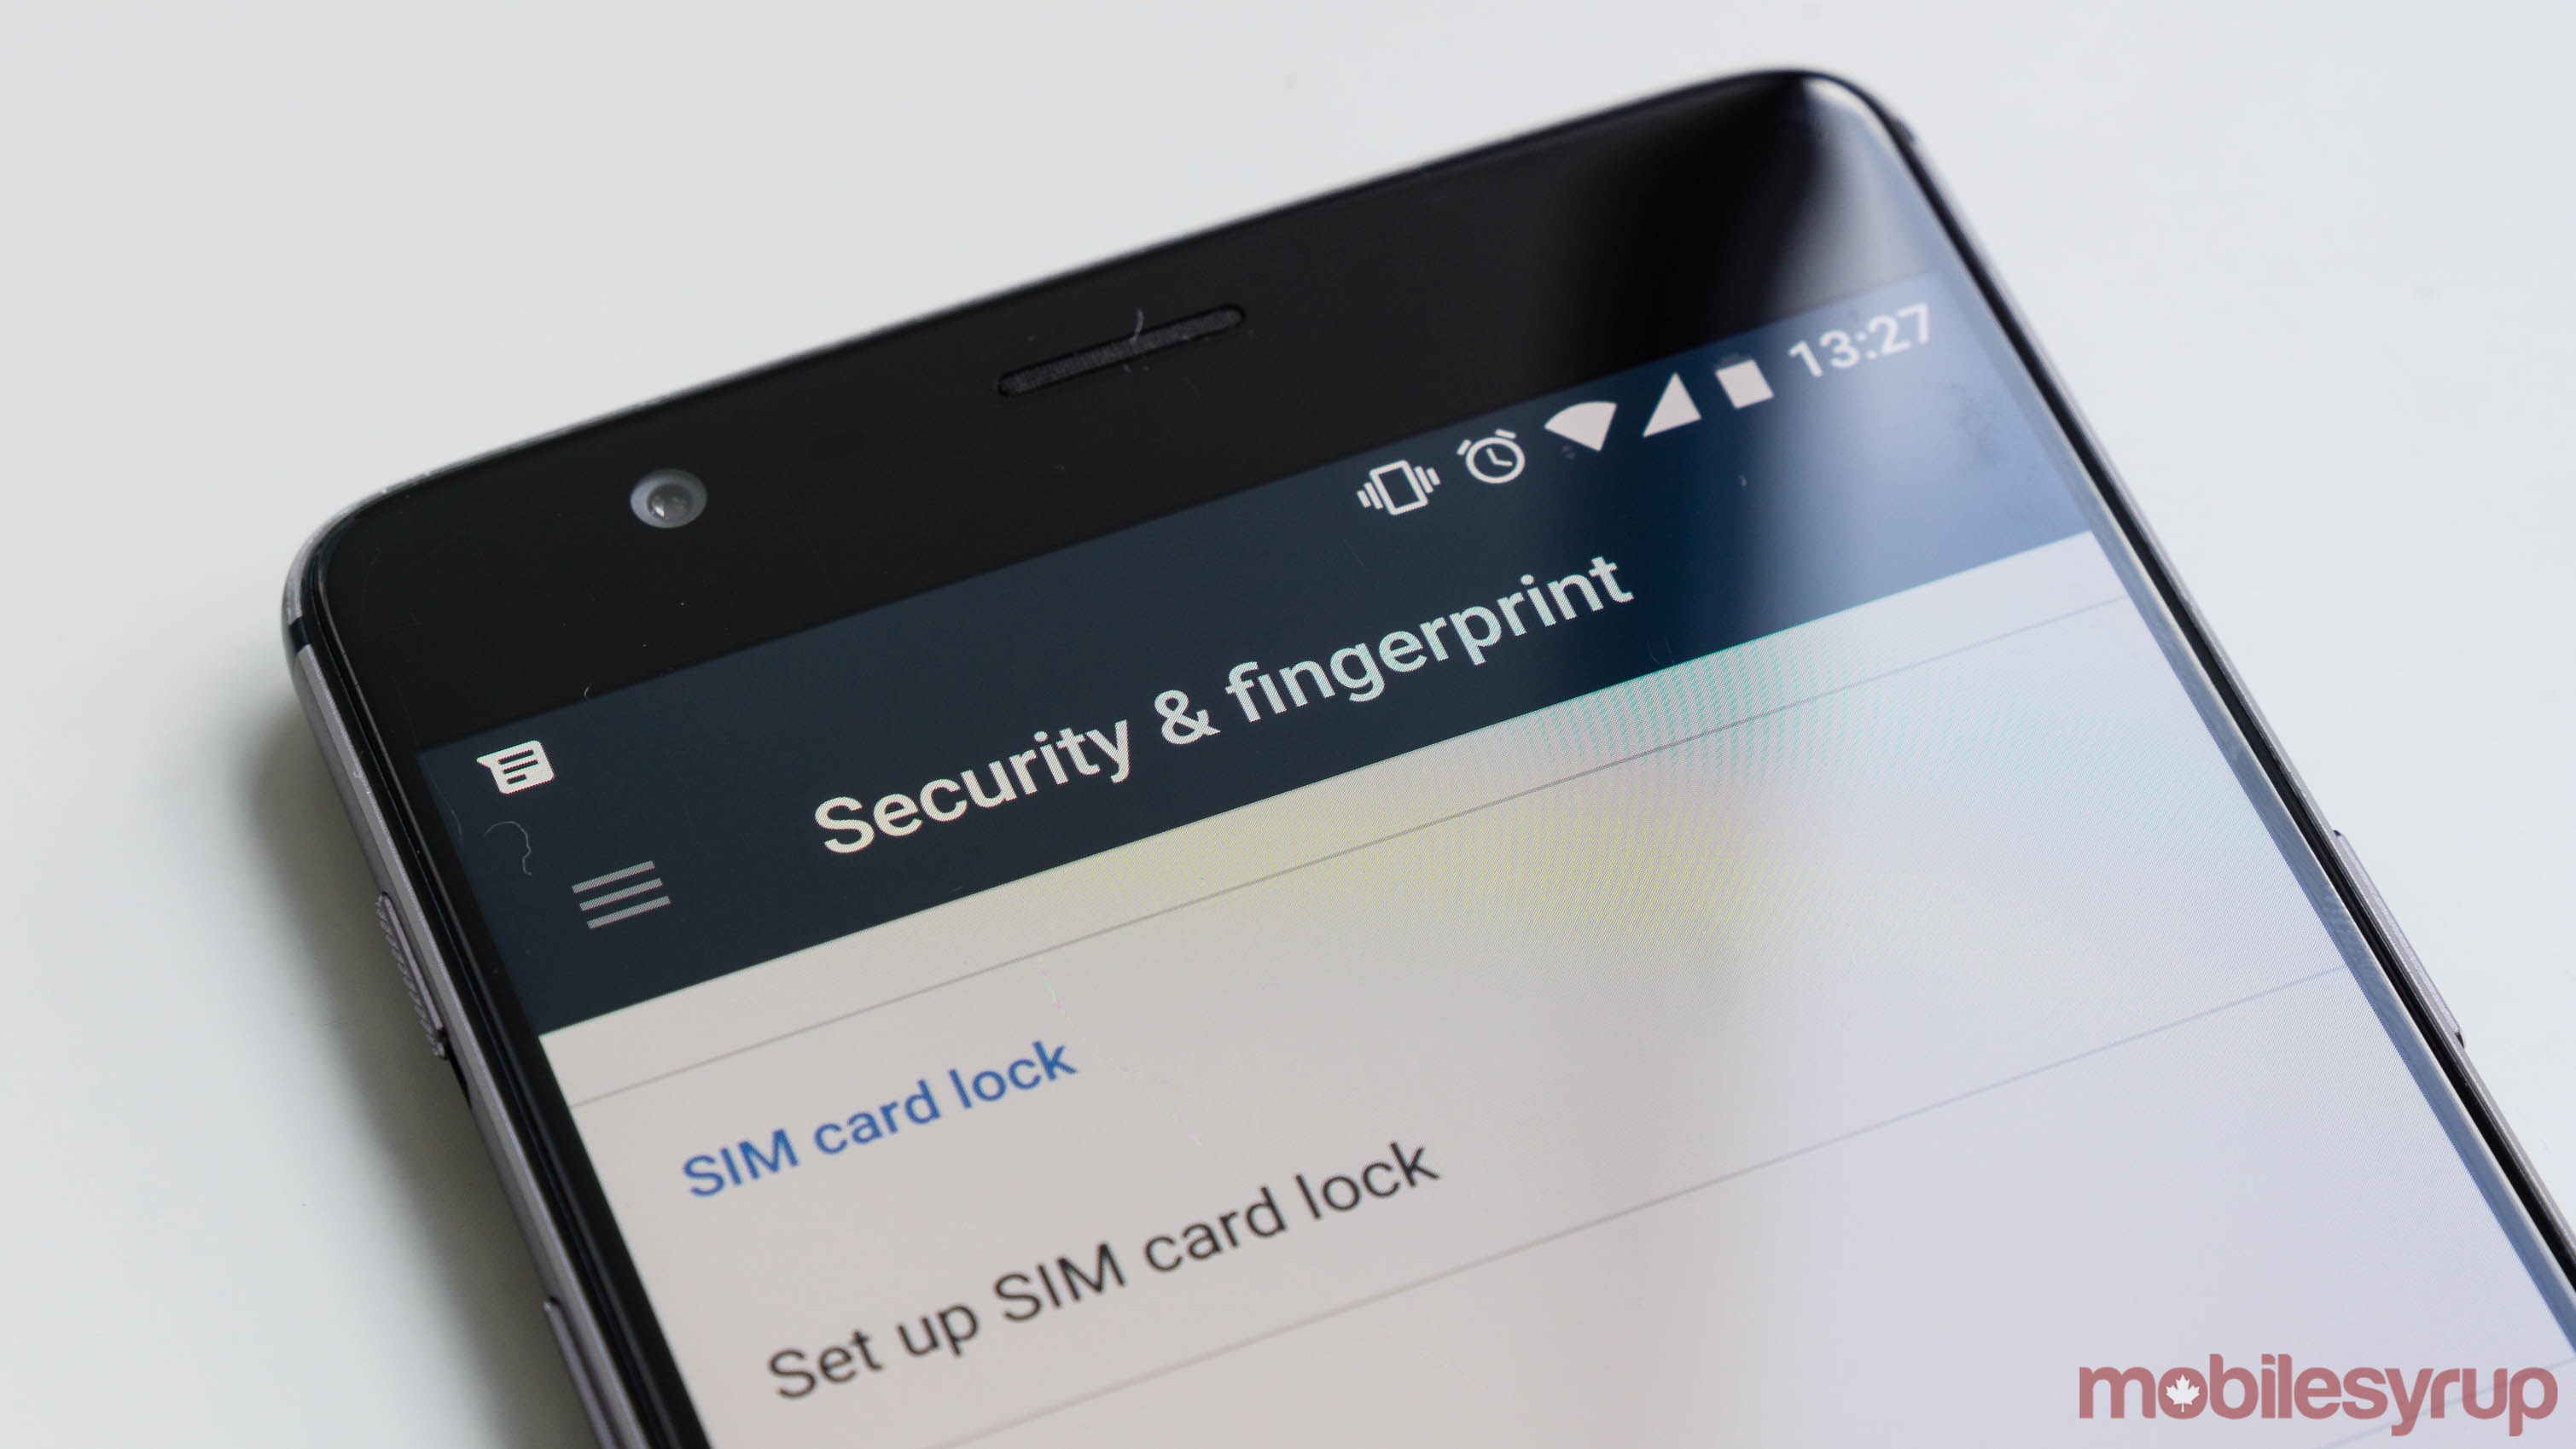 Android security on phone